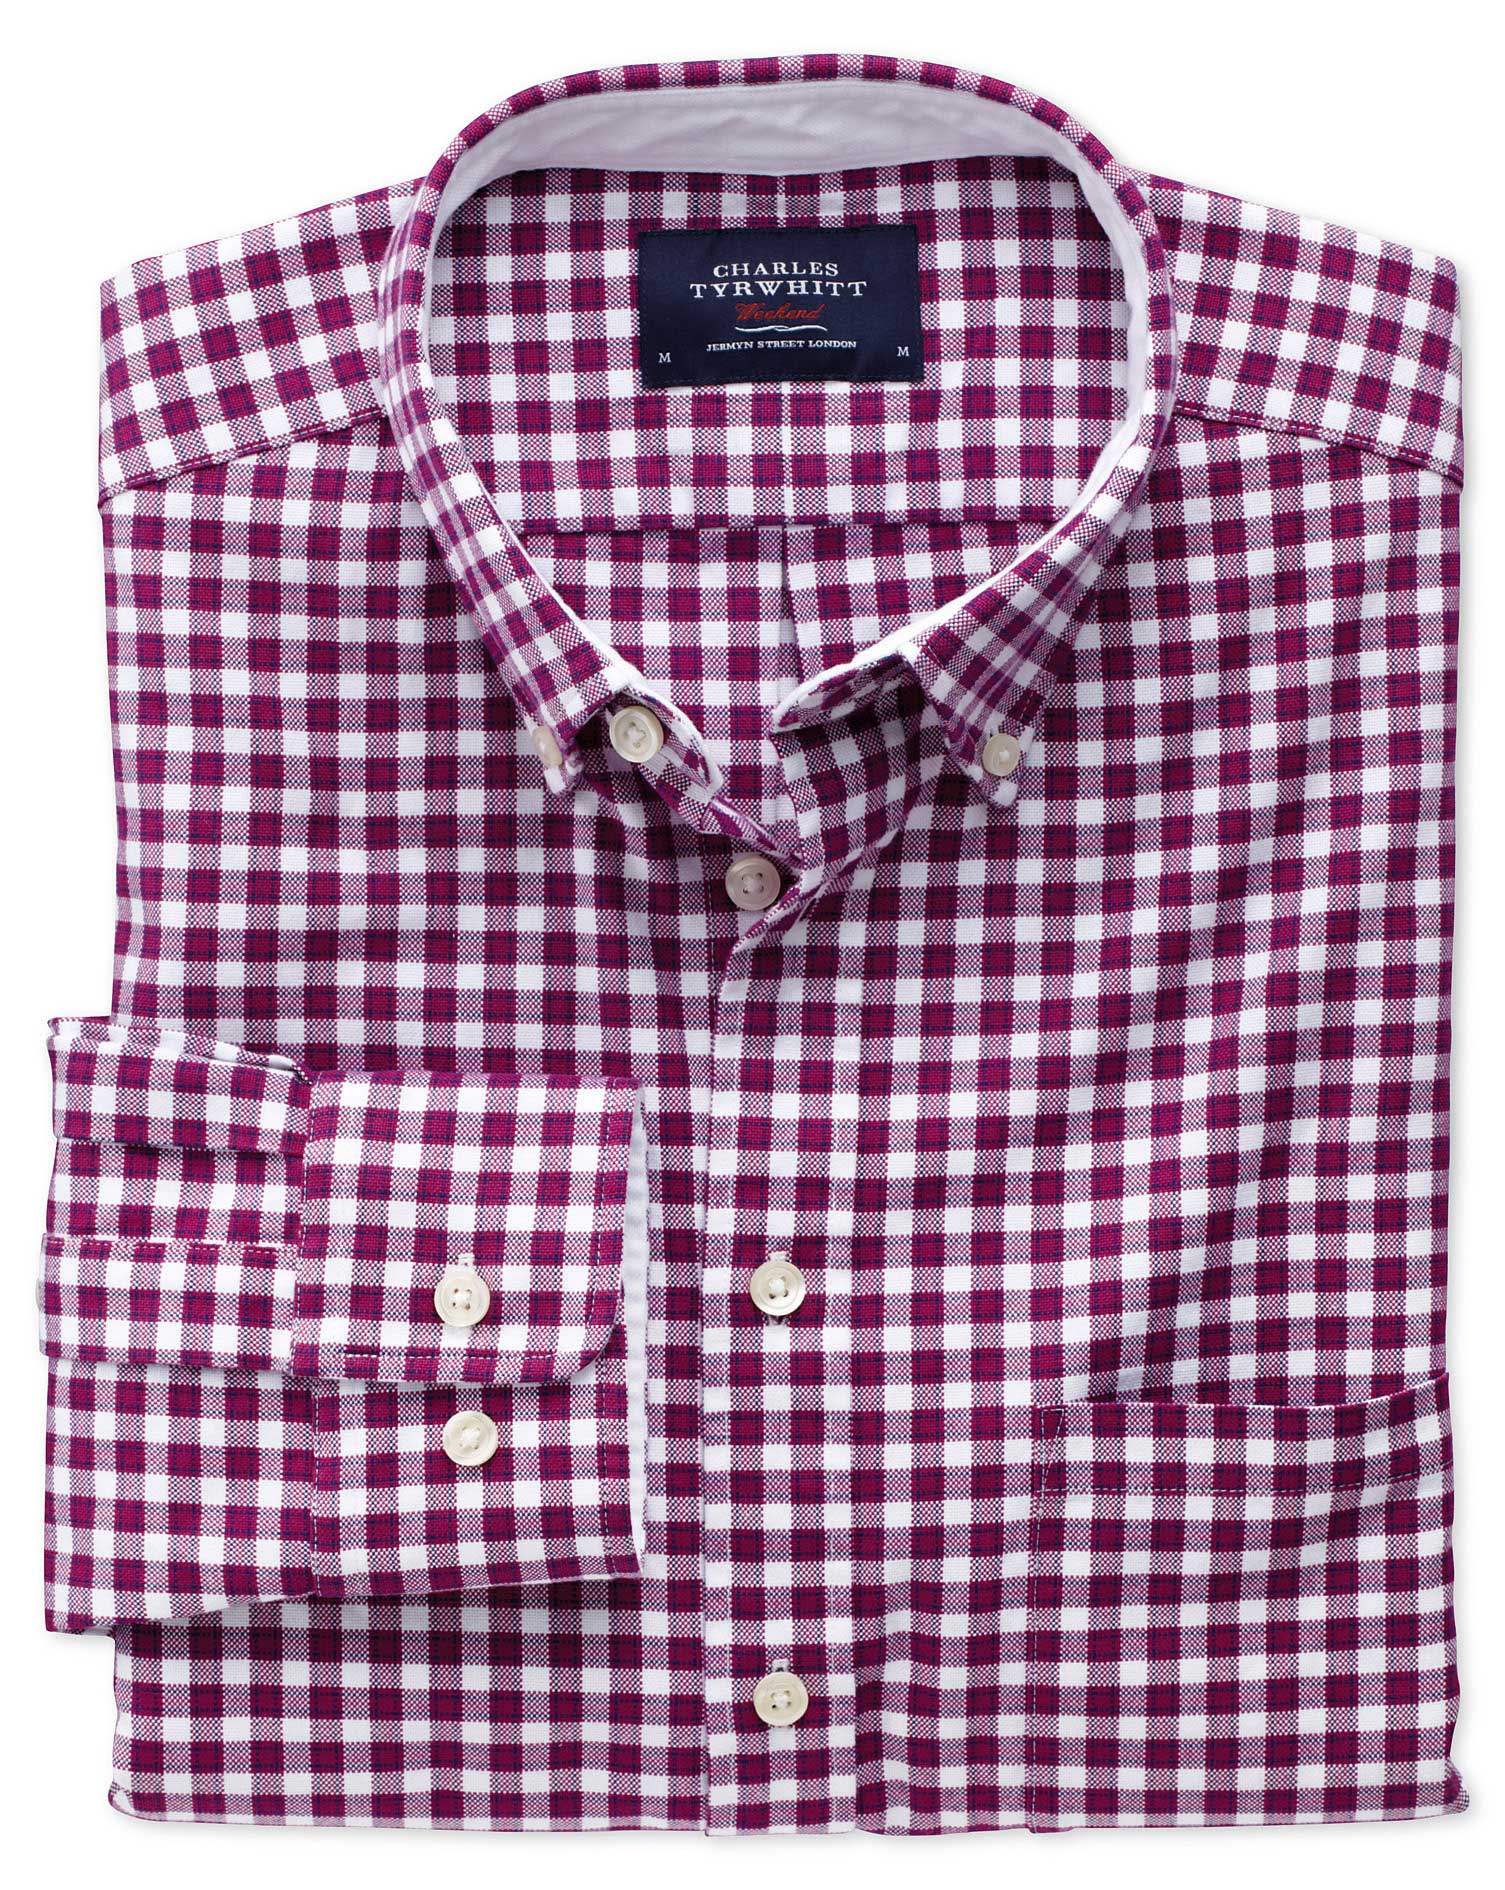 Extra Slim Fit Berry Check Washed Oxford Cotton Shirt Single Cuff Size XS by Charles Tyrwhitt